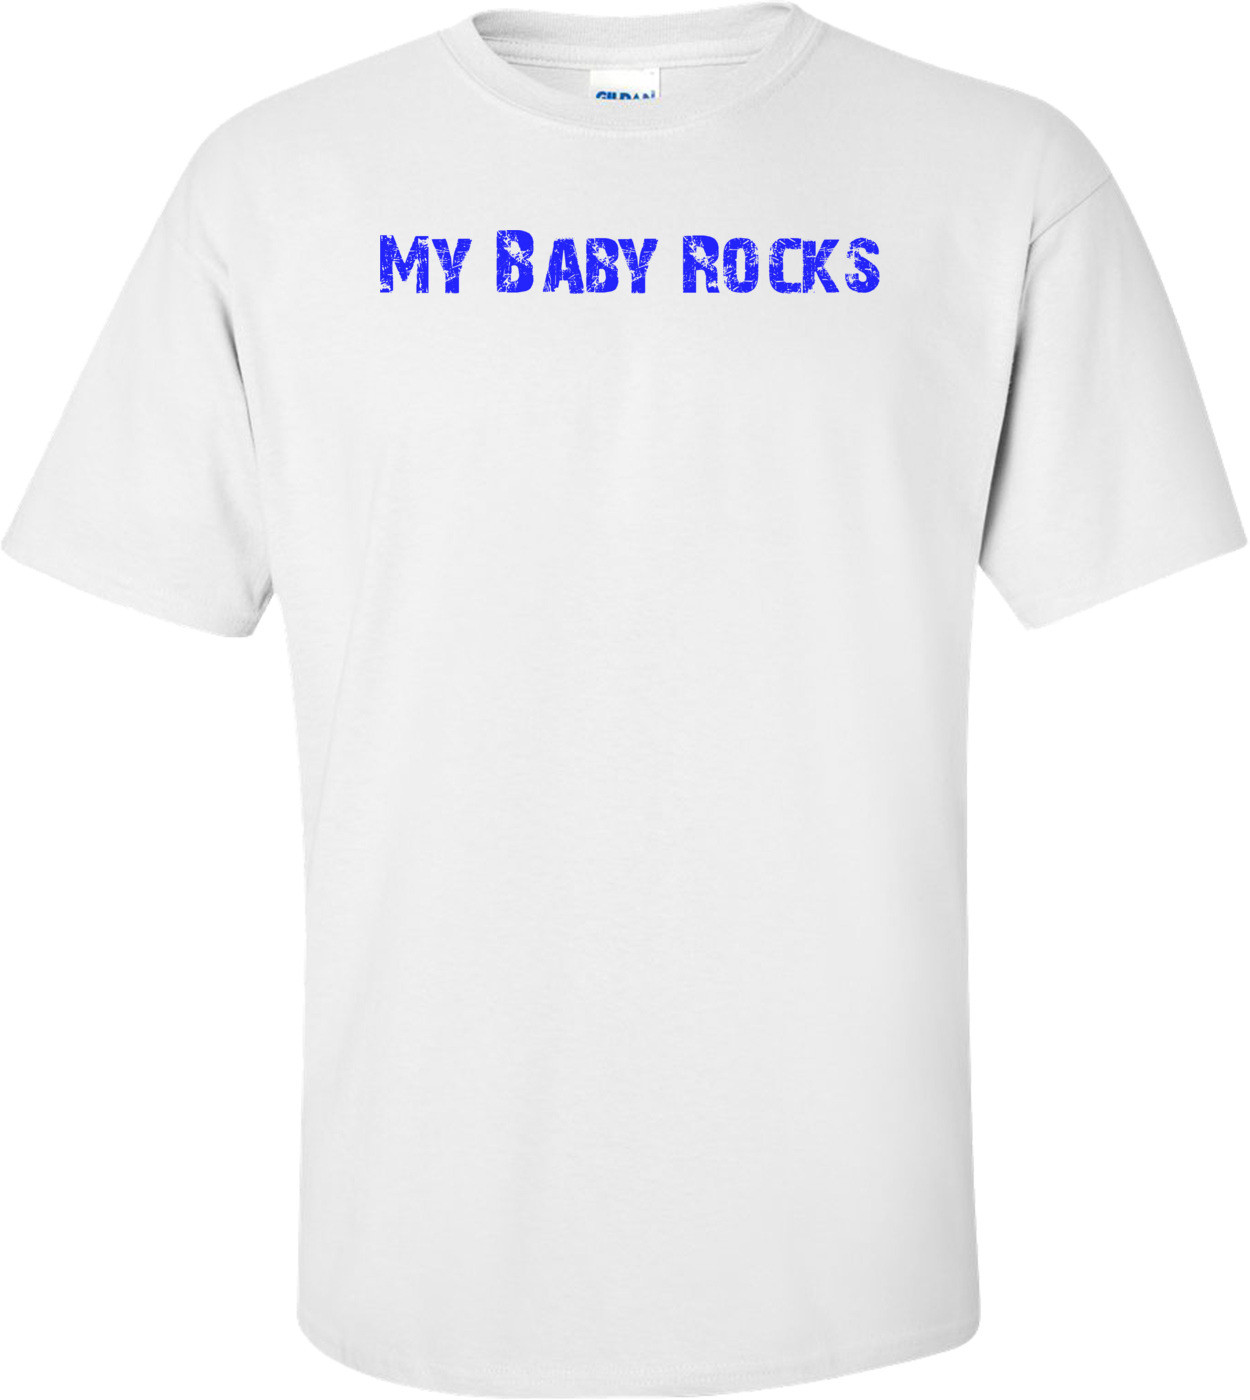 My Baby Rocks Shirt